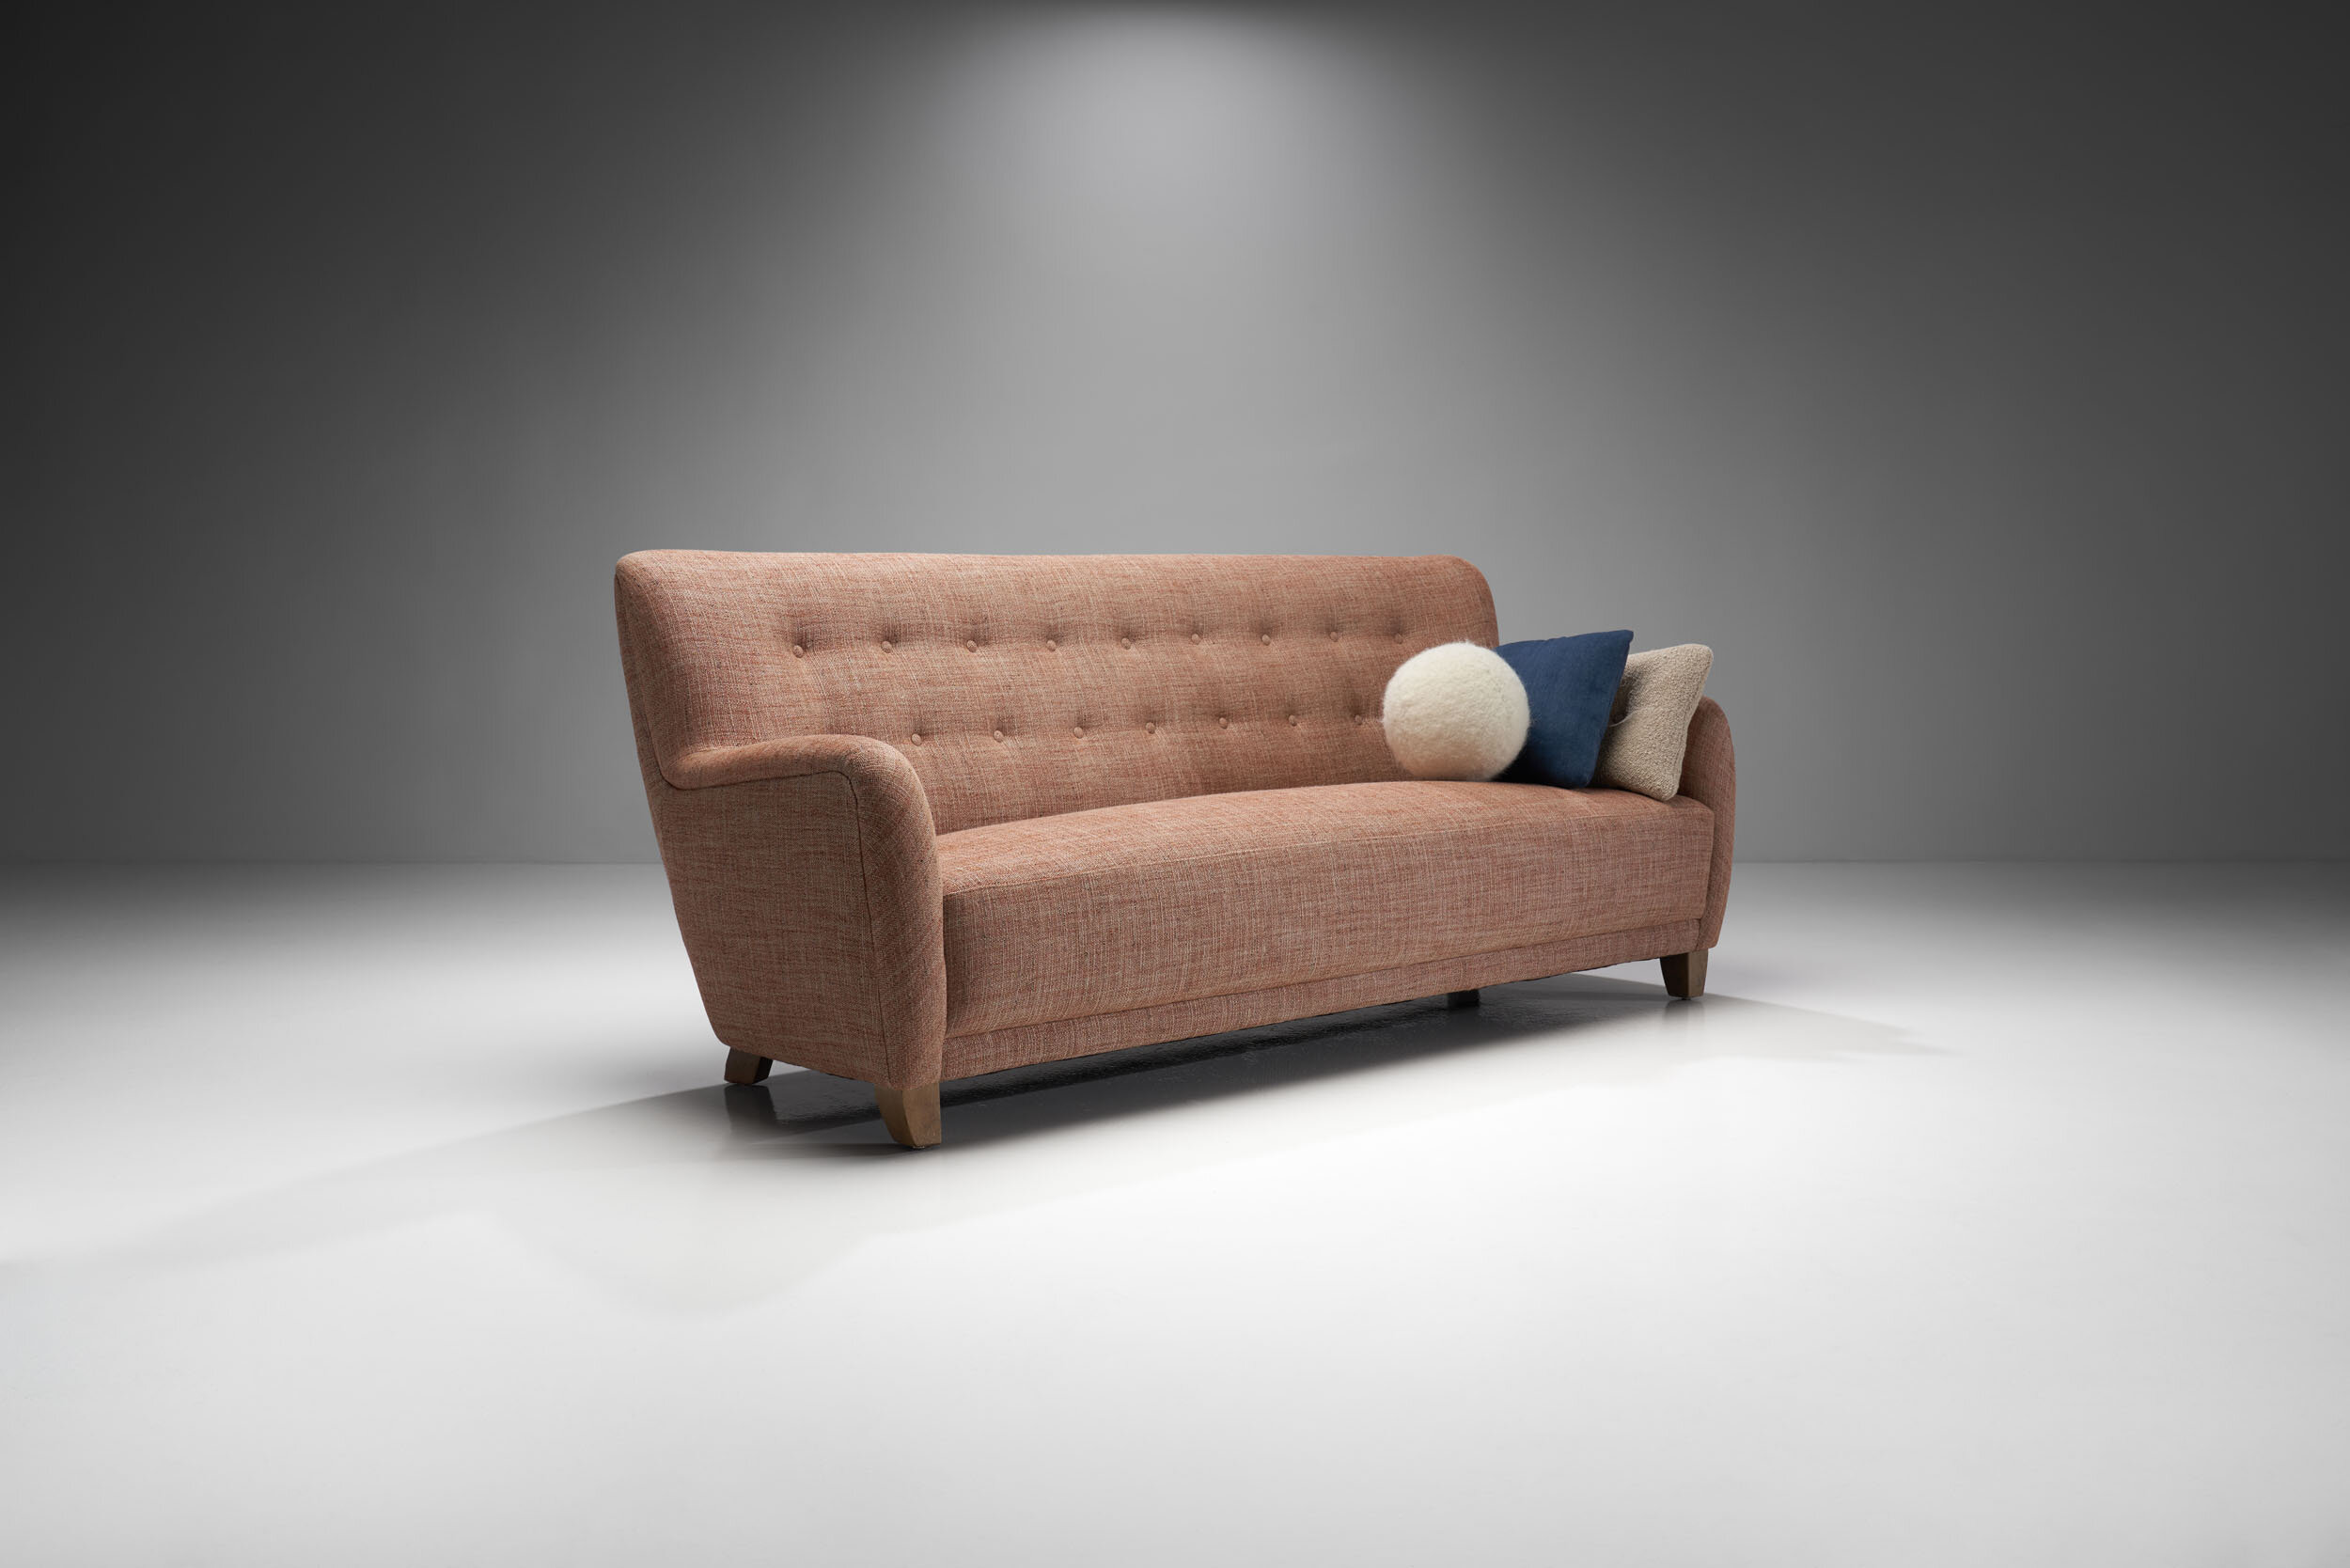 Danish Cabinetmaker Three Seater Sofa